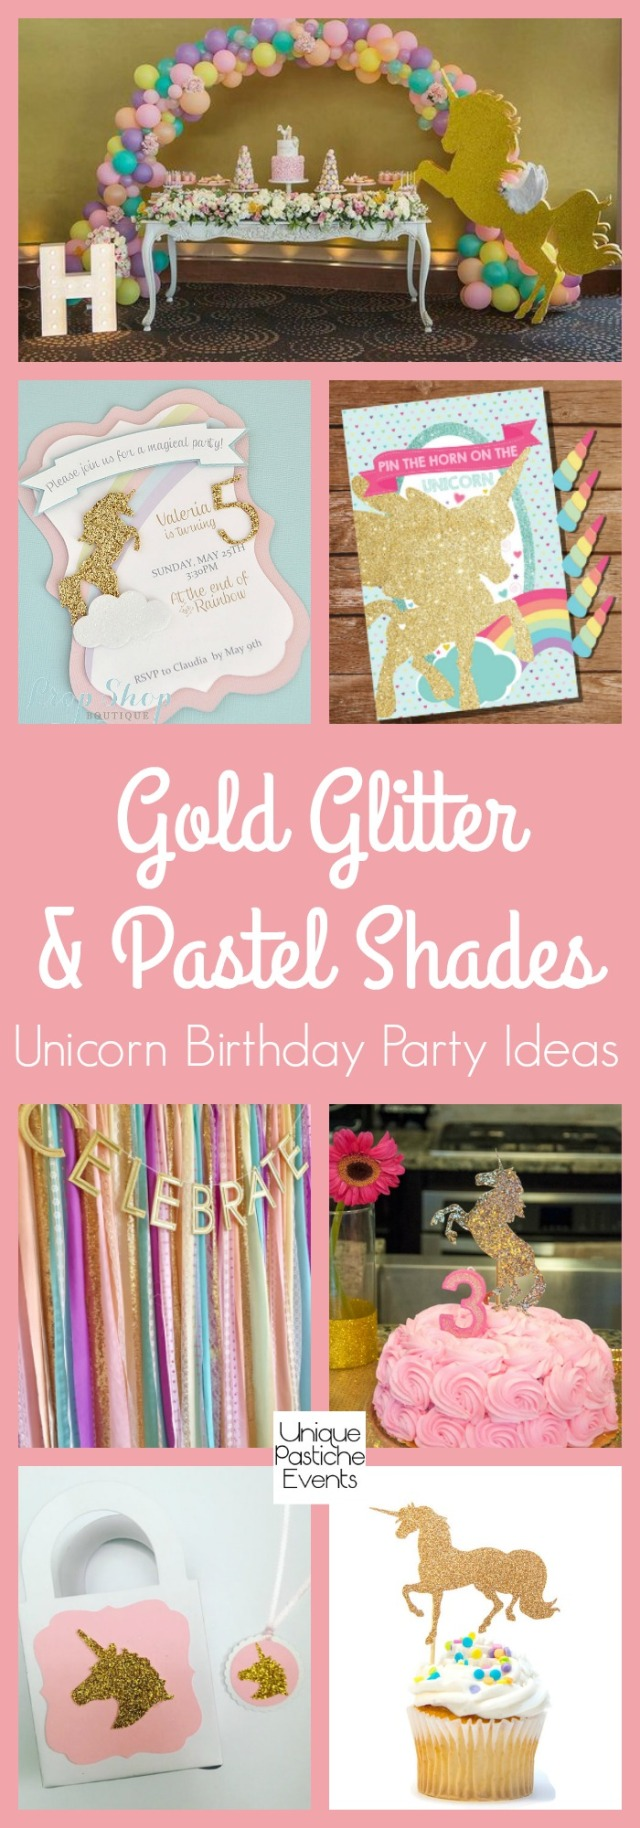 Gold Glitter and Pastel Shades Unicorn Birthday Party Ideas